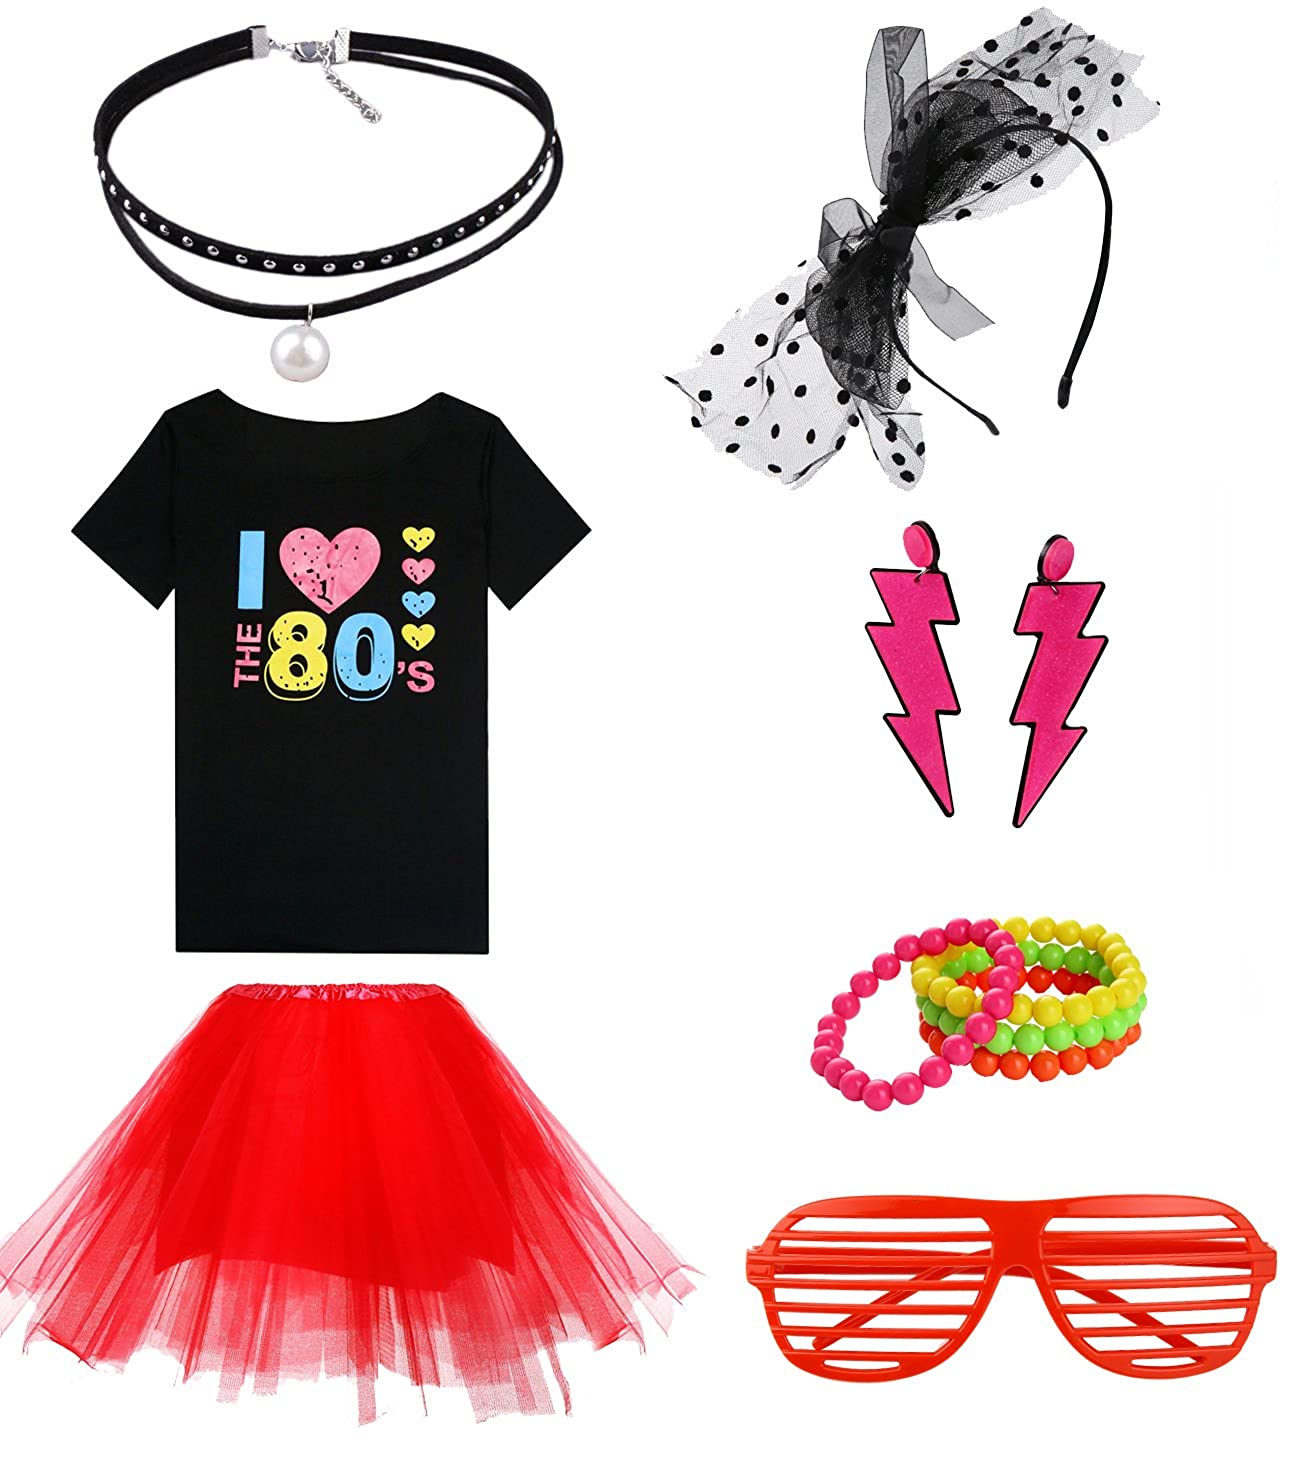 266c986014f13 Amazon.com  Fashion by Janestone Women s I Love The 80 s Off The Shoulder  Tops Costume Set for 80 s Fans  Clothing